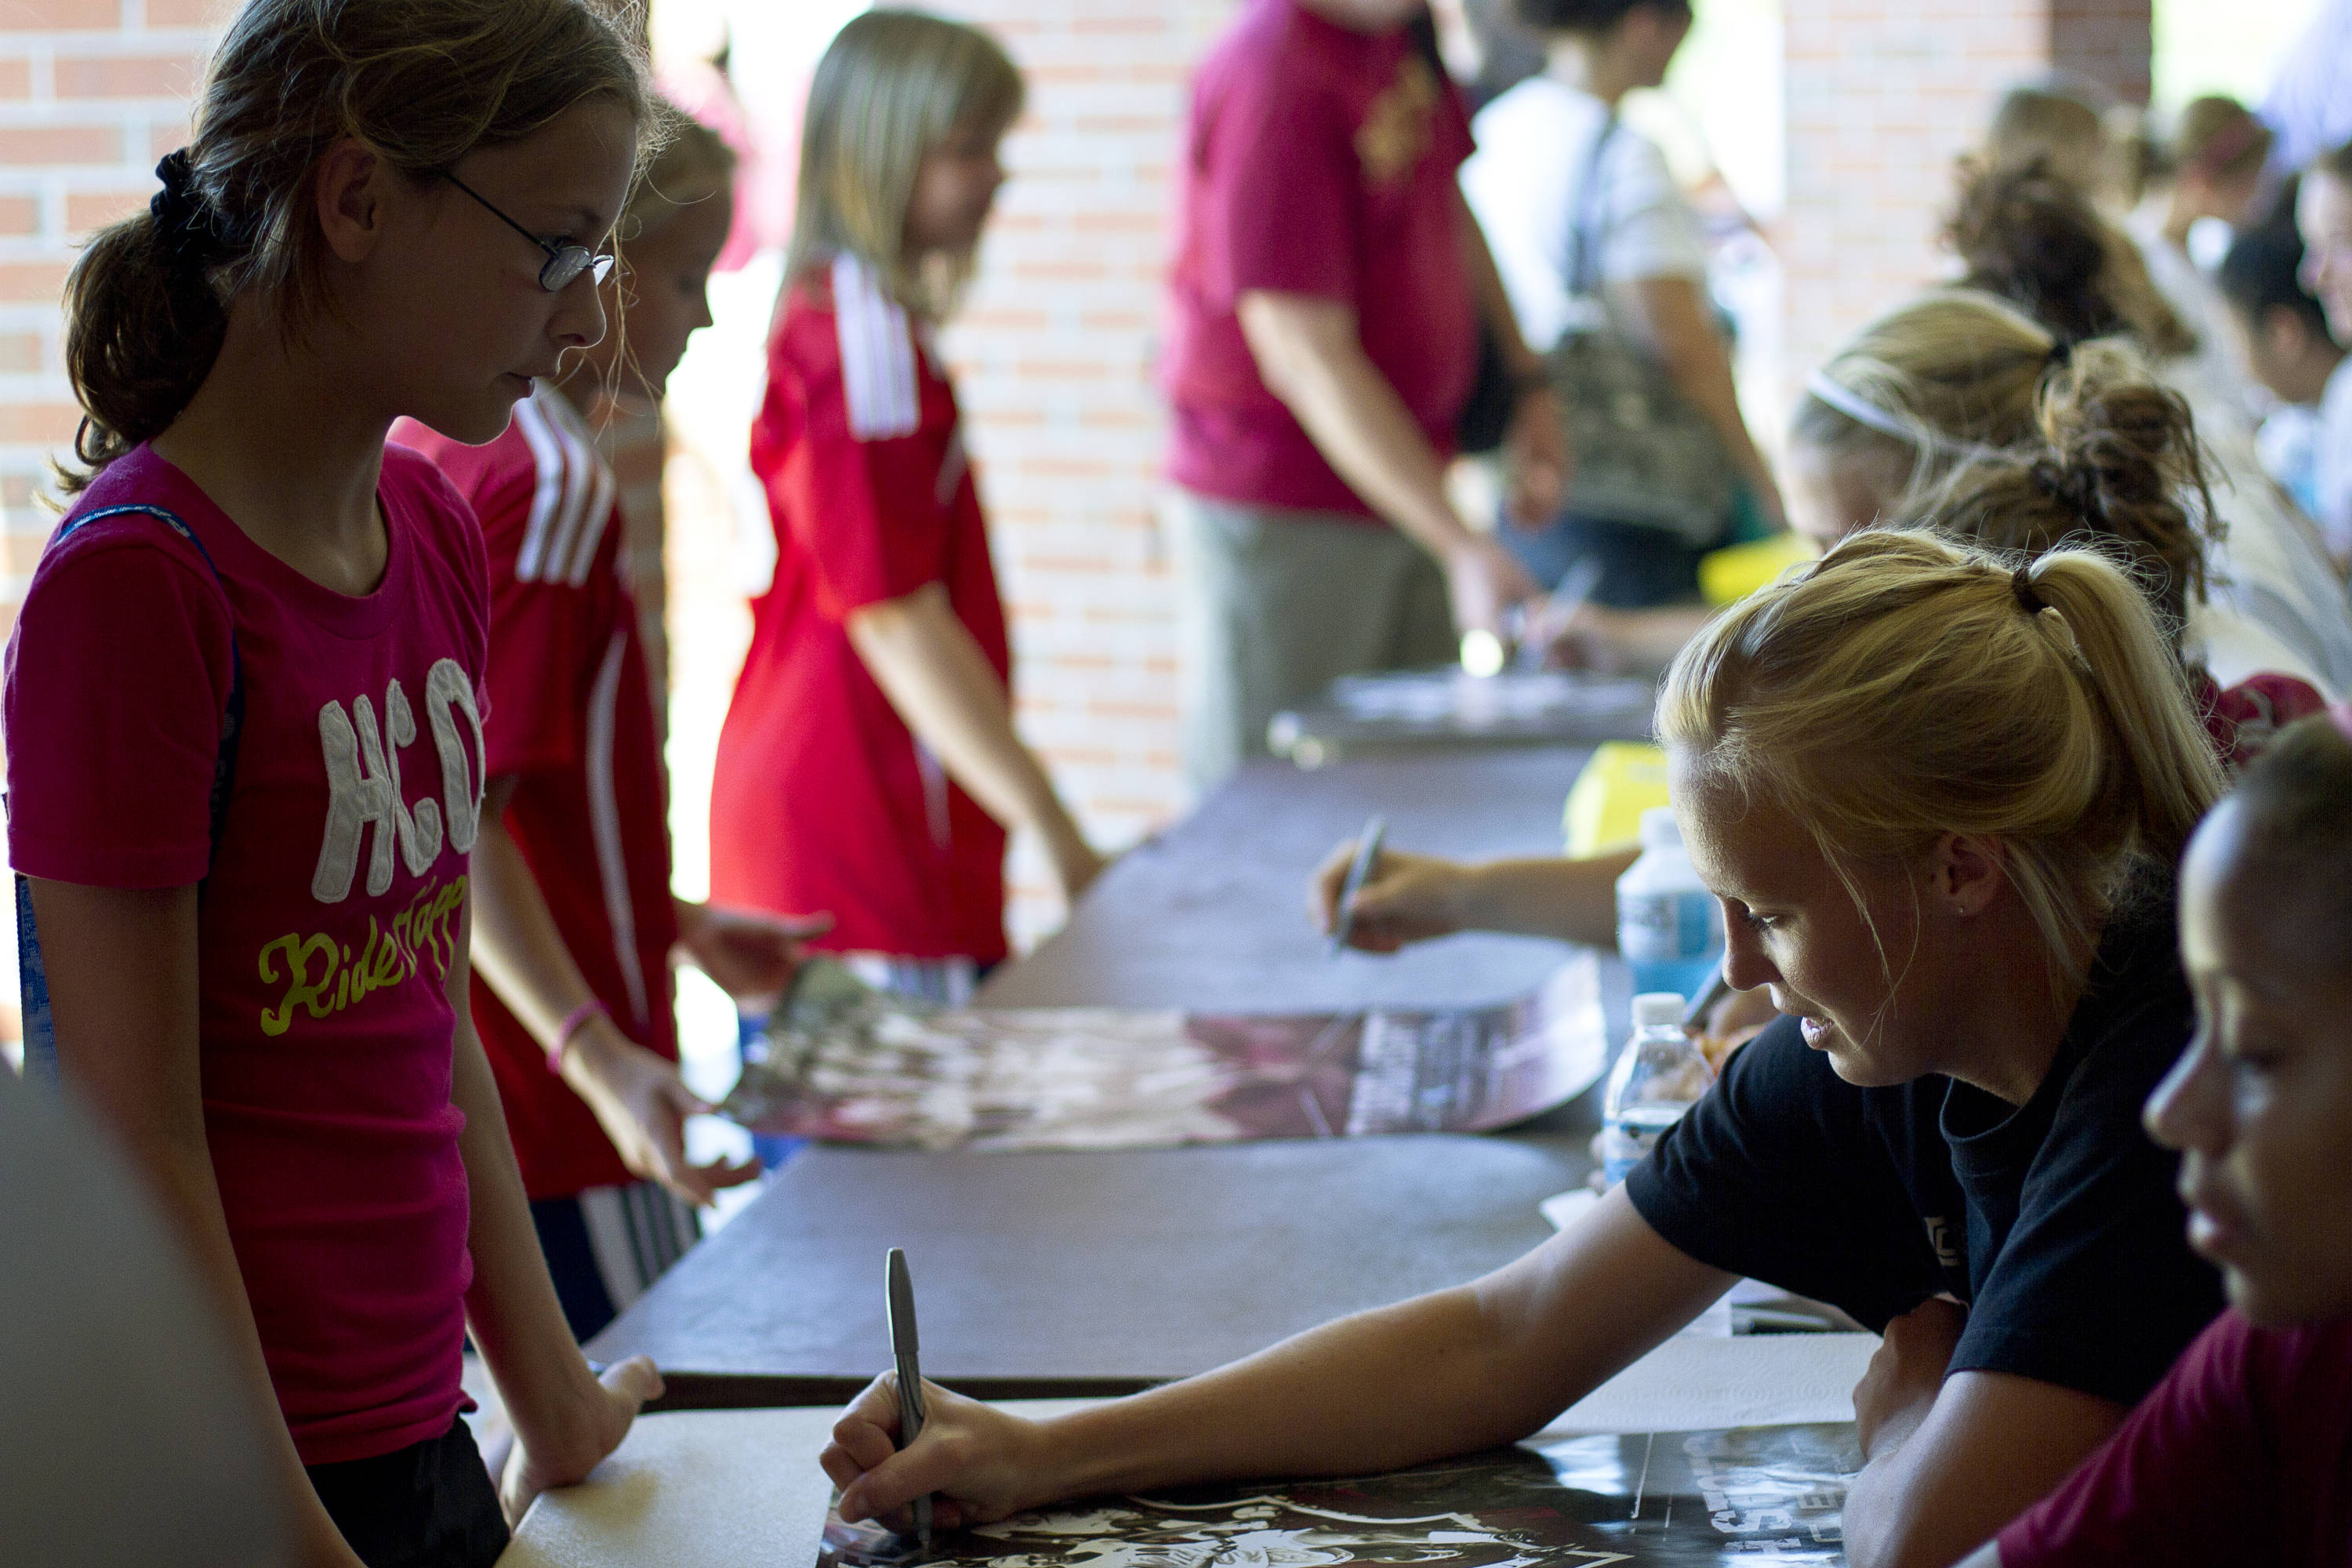 Ella Stephan (17) signs a poster for a young fan after Sunday's game against North Florida.